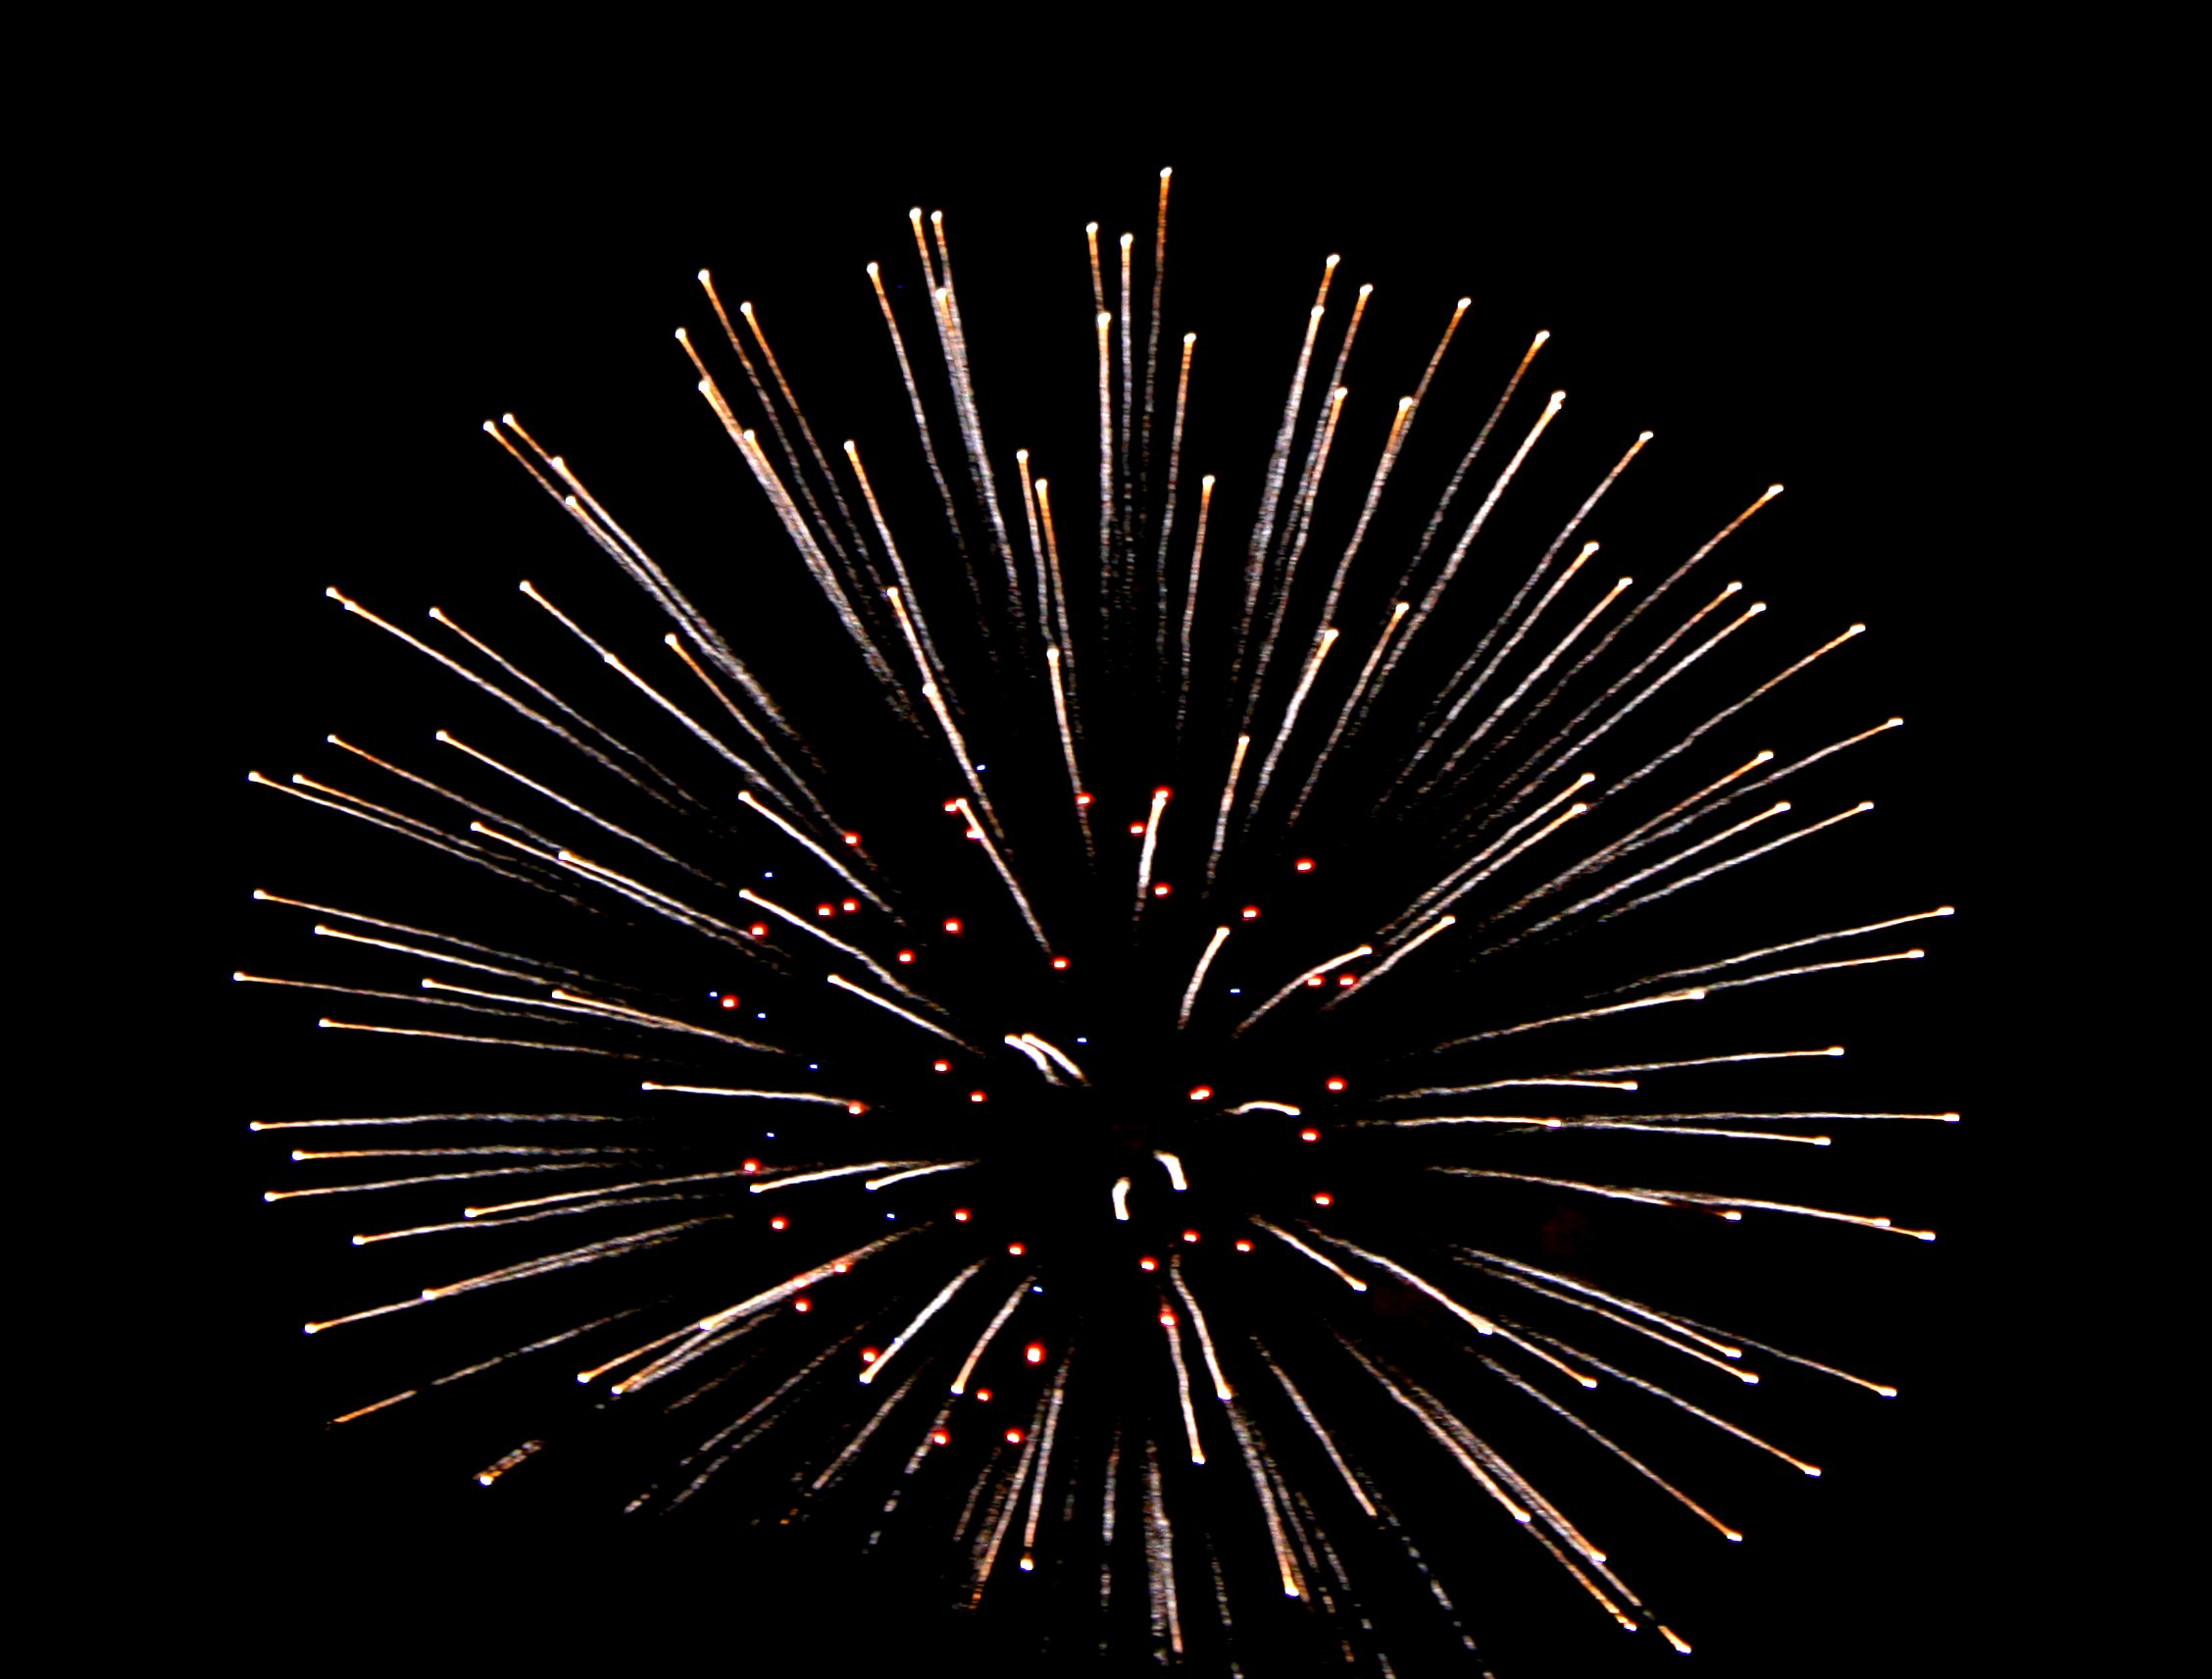 an analysis of the black powder and the use of the fireworks during the 4th of july Fireworks are synonymous with our celebration of independence day yet, the thrill of fireworks can also bring pain on average, 250 people go to the emergency room every day with fireworks-related injuries in the month around the july 4th holiday.